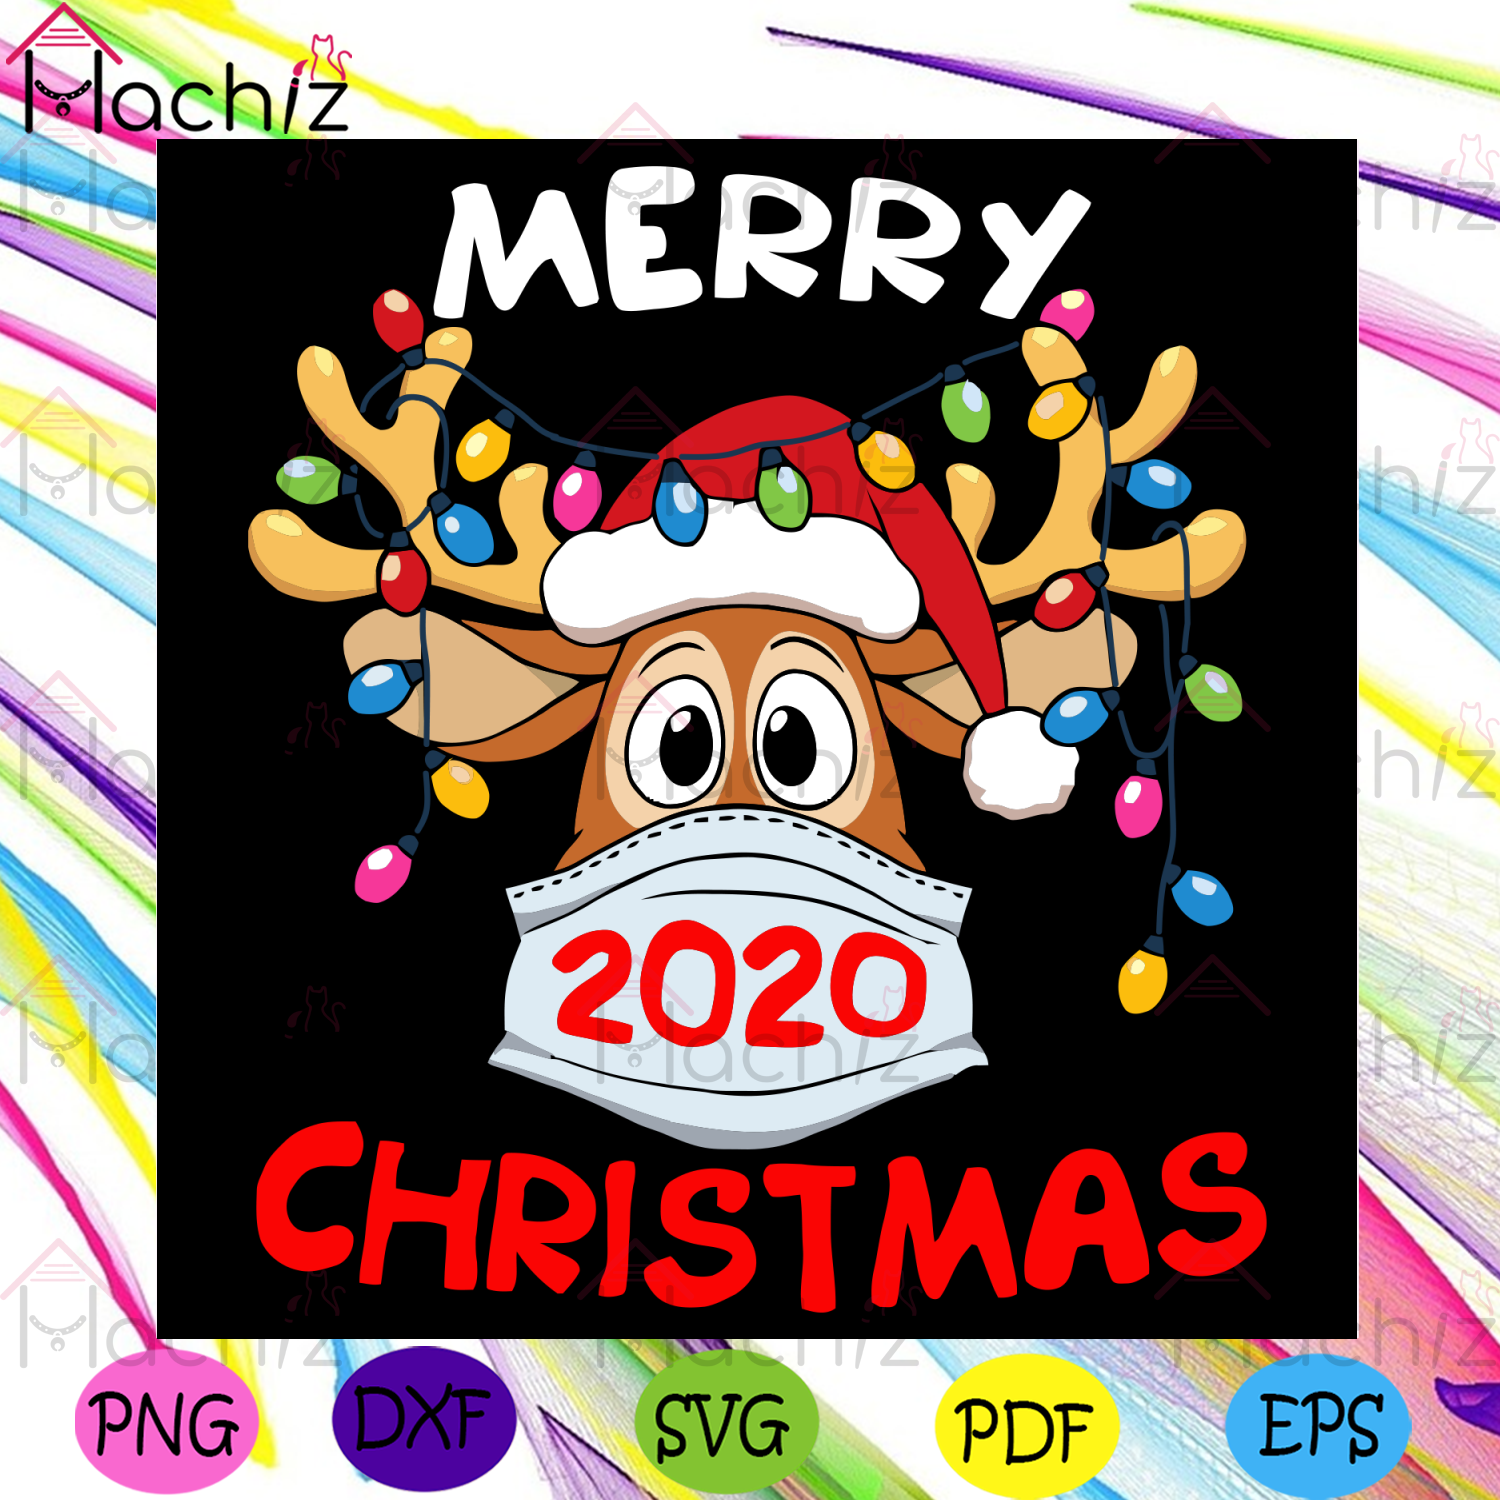 Merry Christmas Svg, Christmas Svg, Reindeer Svg, Quarantined Christmas 2020, Santa Hat Svg, Christmas Lights Svg, Quarantined Svg, Coronavirus Svg, Masking Svg, Masking Reindeer Svg, Christmas Gifts Svg, Christmas Celebration Svg,